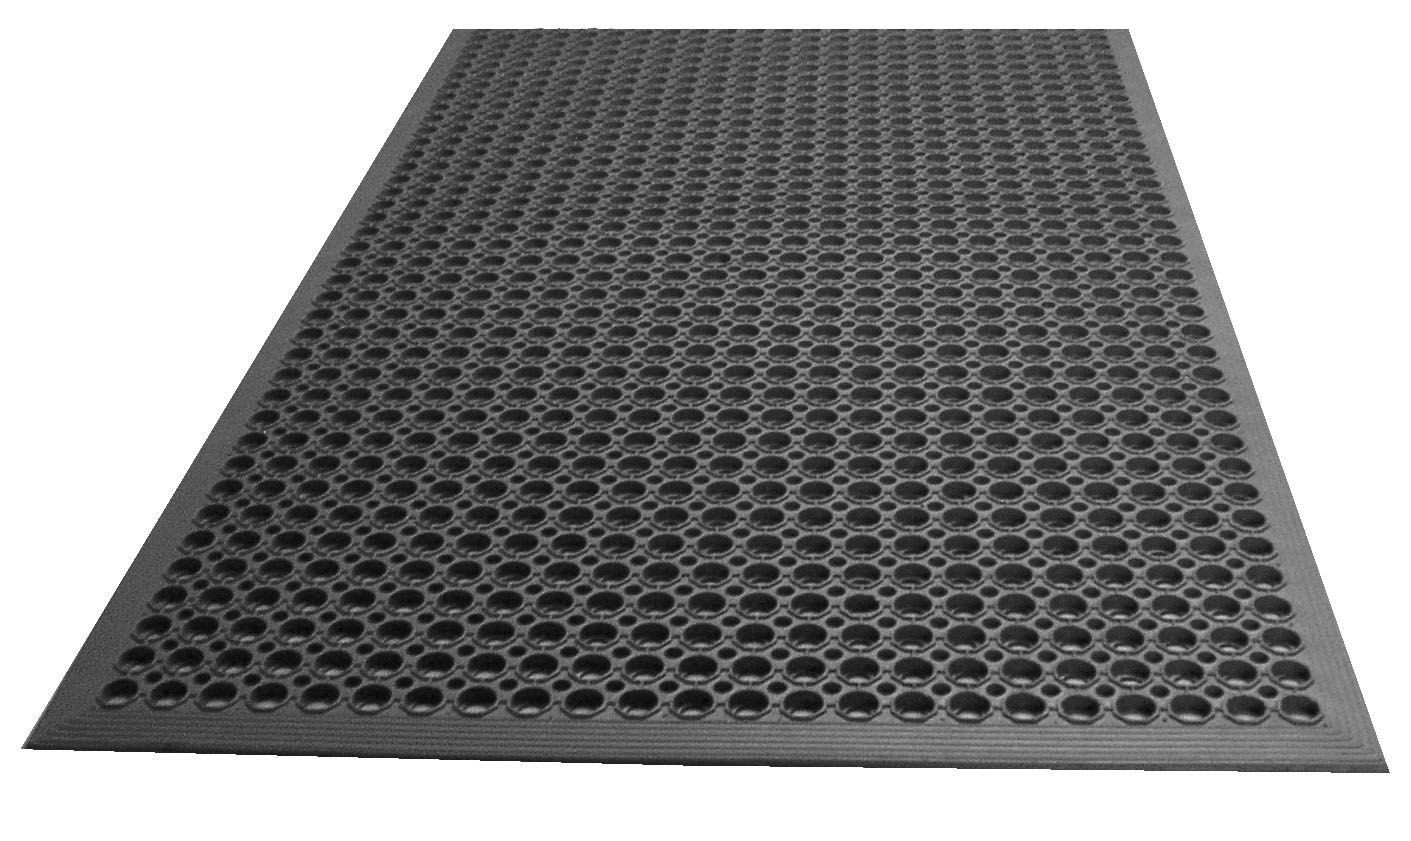 x tools tred fatigue notrax anti diamond safety product sof floor mat shop